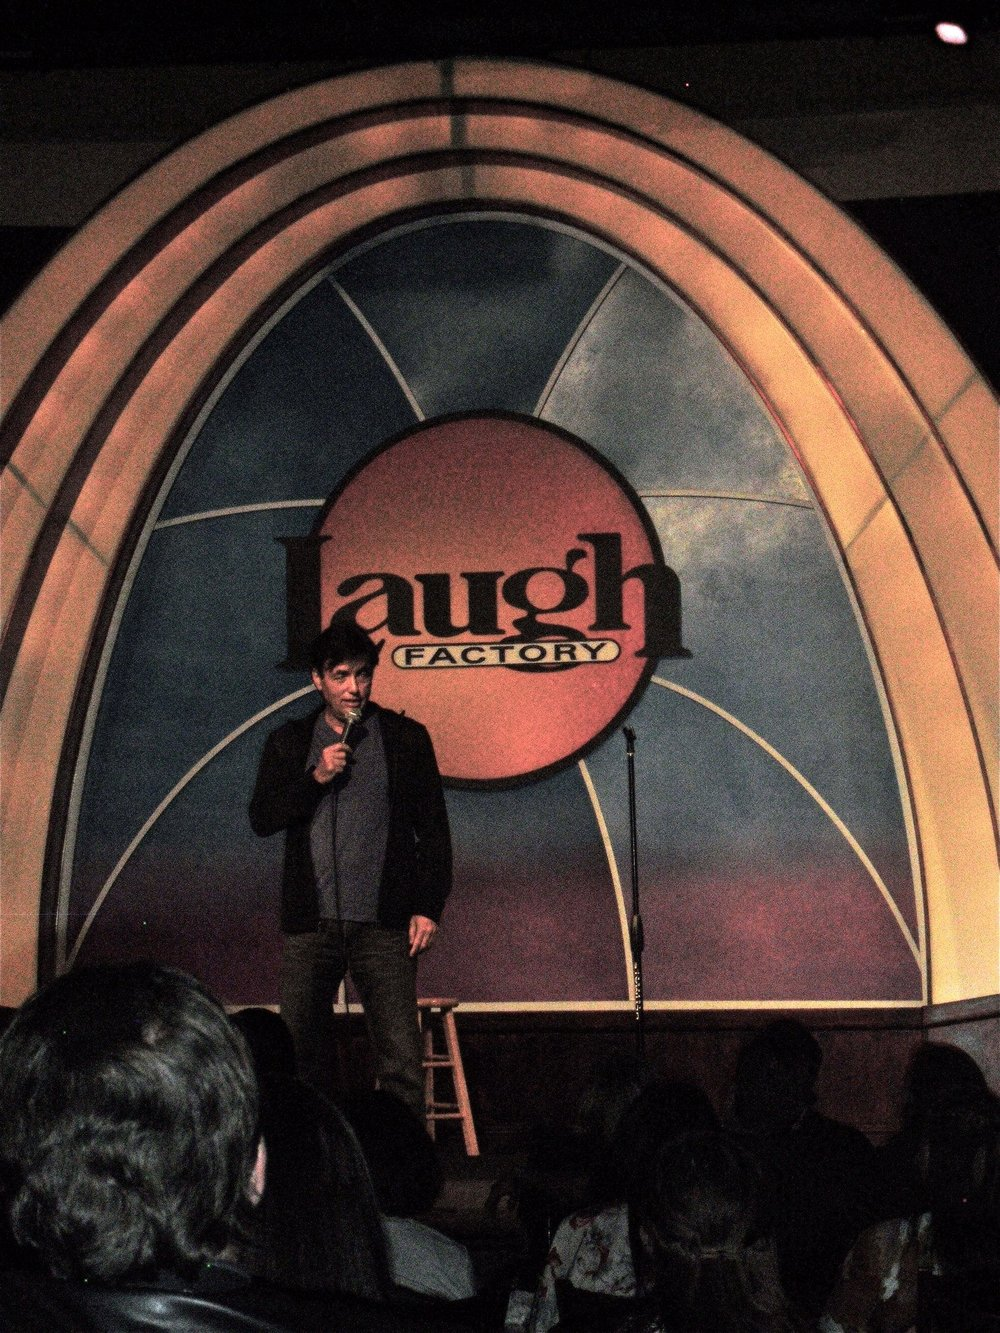 Long Beach Laugh Factory